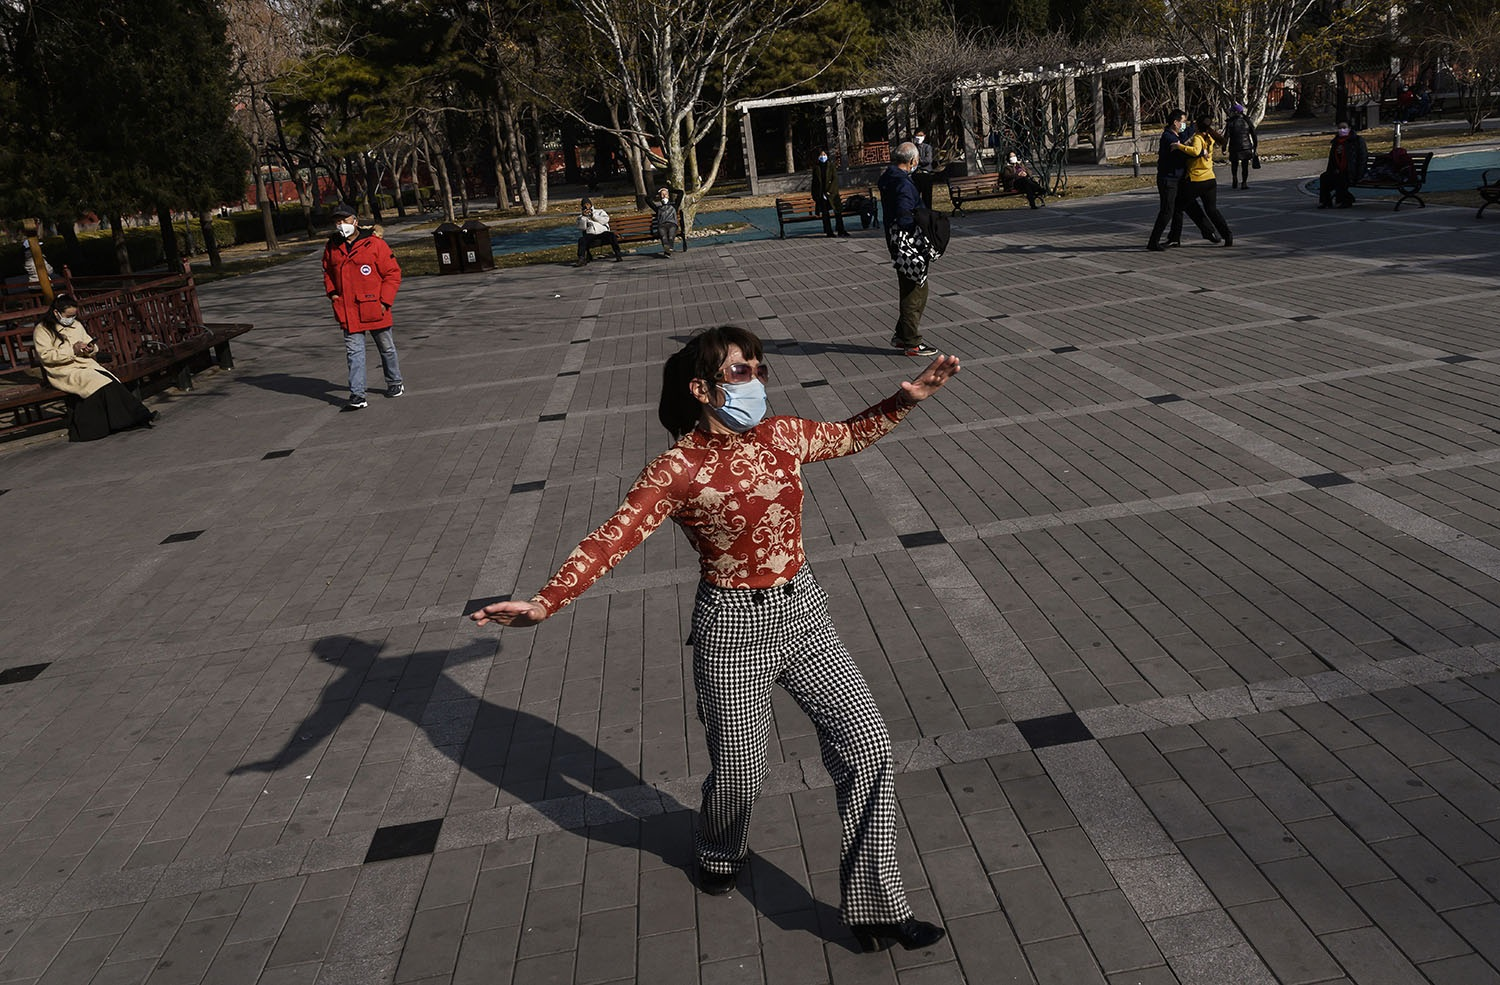 A Chinese woman wears a protective mask as she dances in a sparsely attended park in Beijing